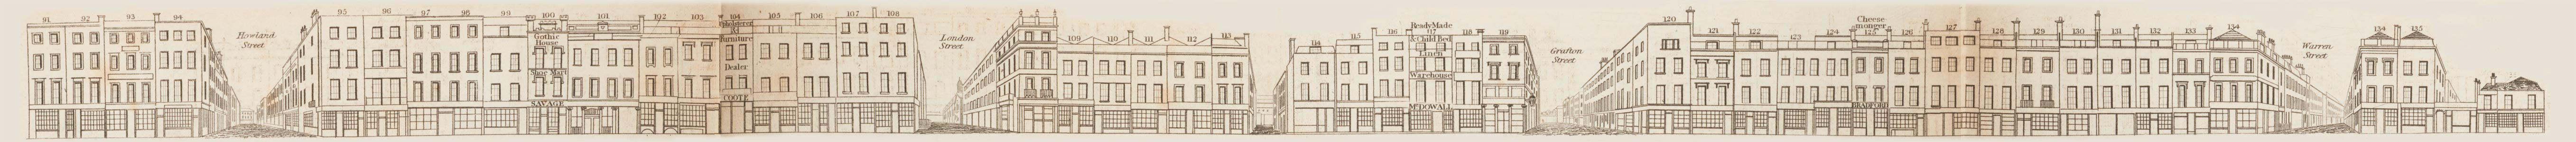 map - Tallis's London street views : No. 49. Tottenham Court Road, division 1 (east)